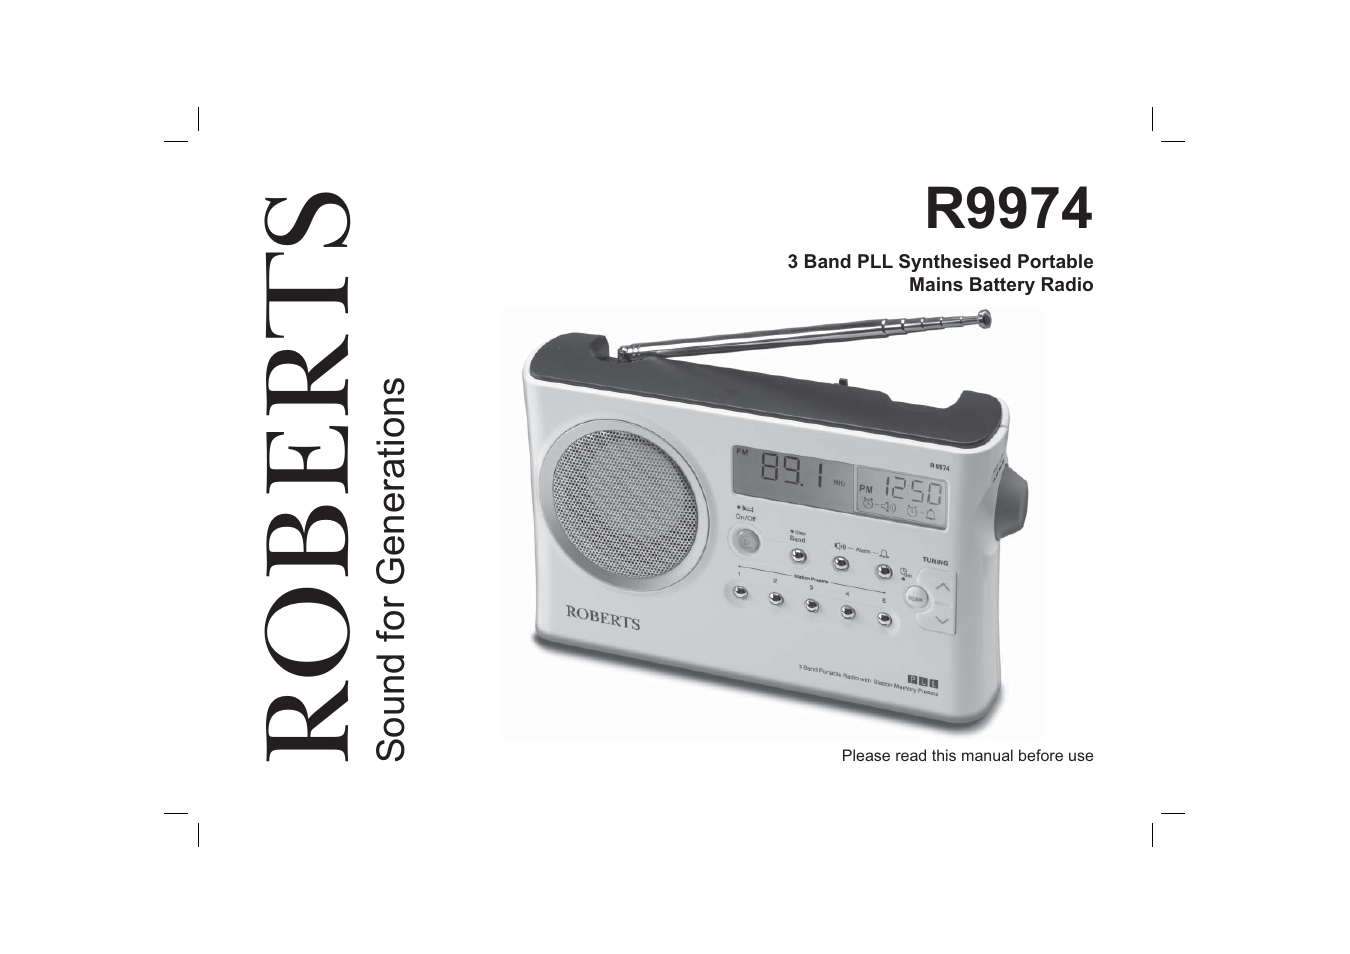 roberts radio r9974 user manual 20 pages rh manualsdir com Moderno Radio Manual Cobra CB Radio Manual